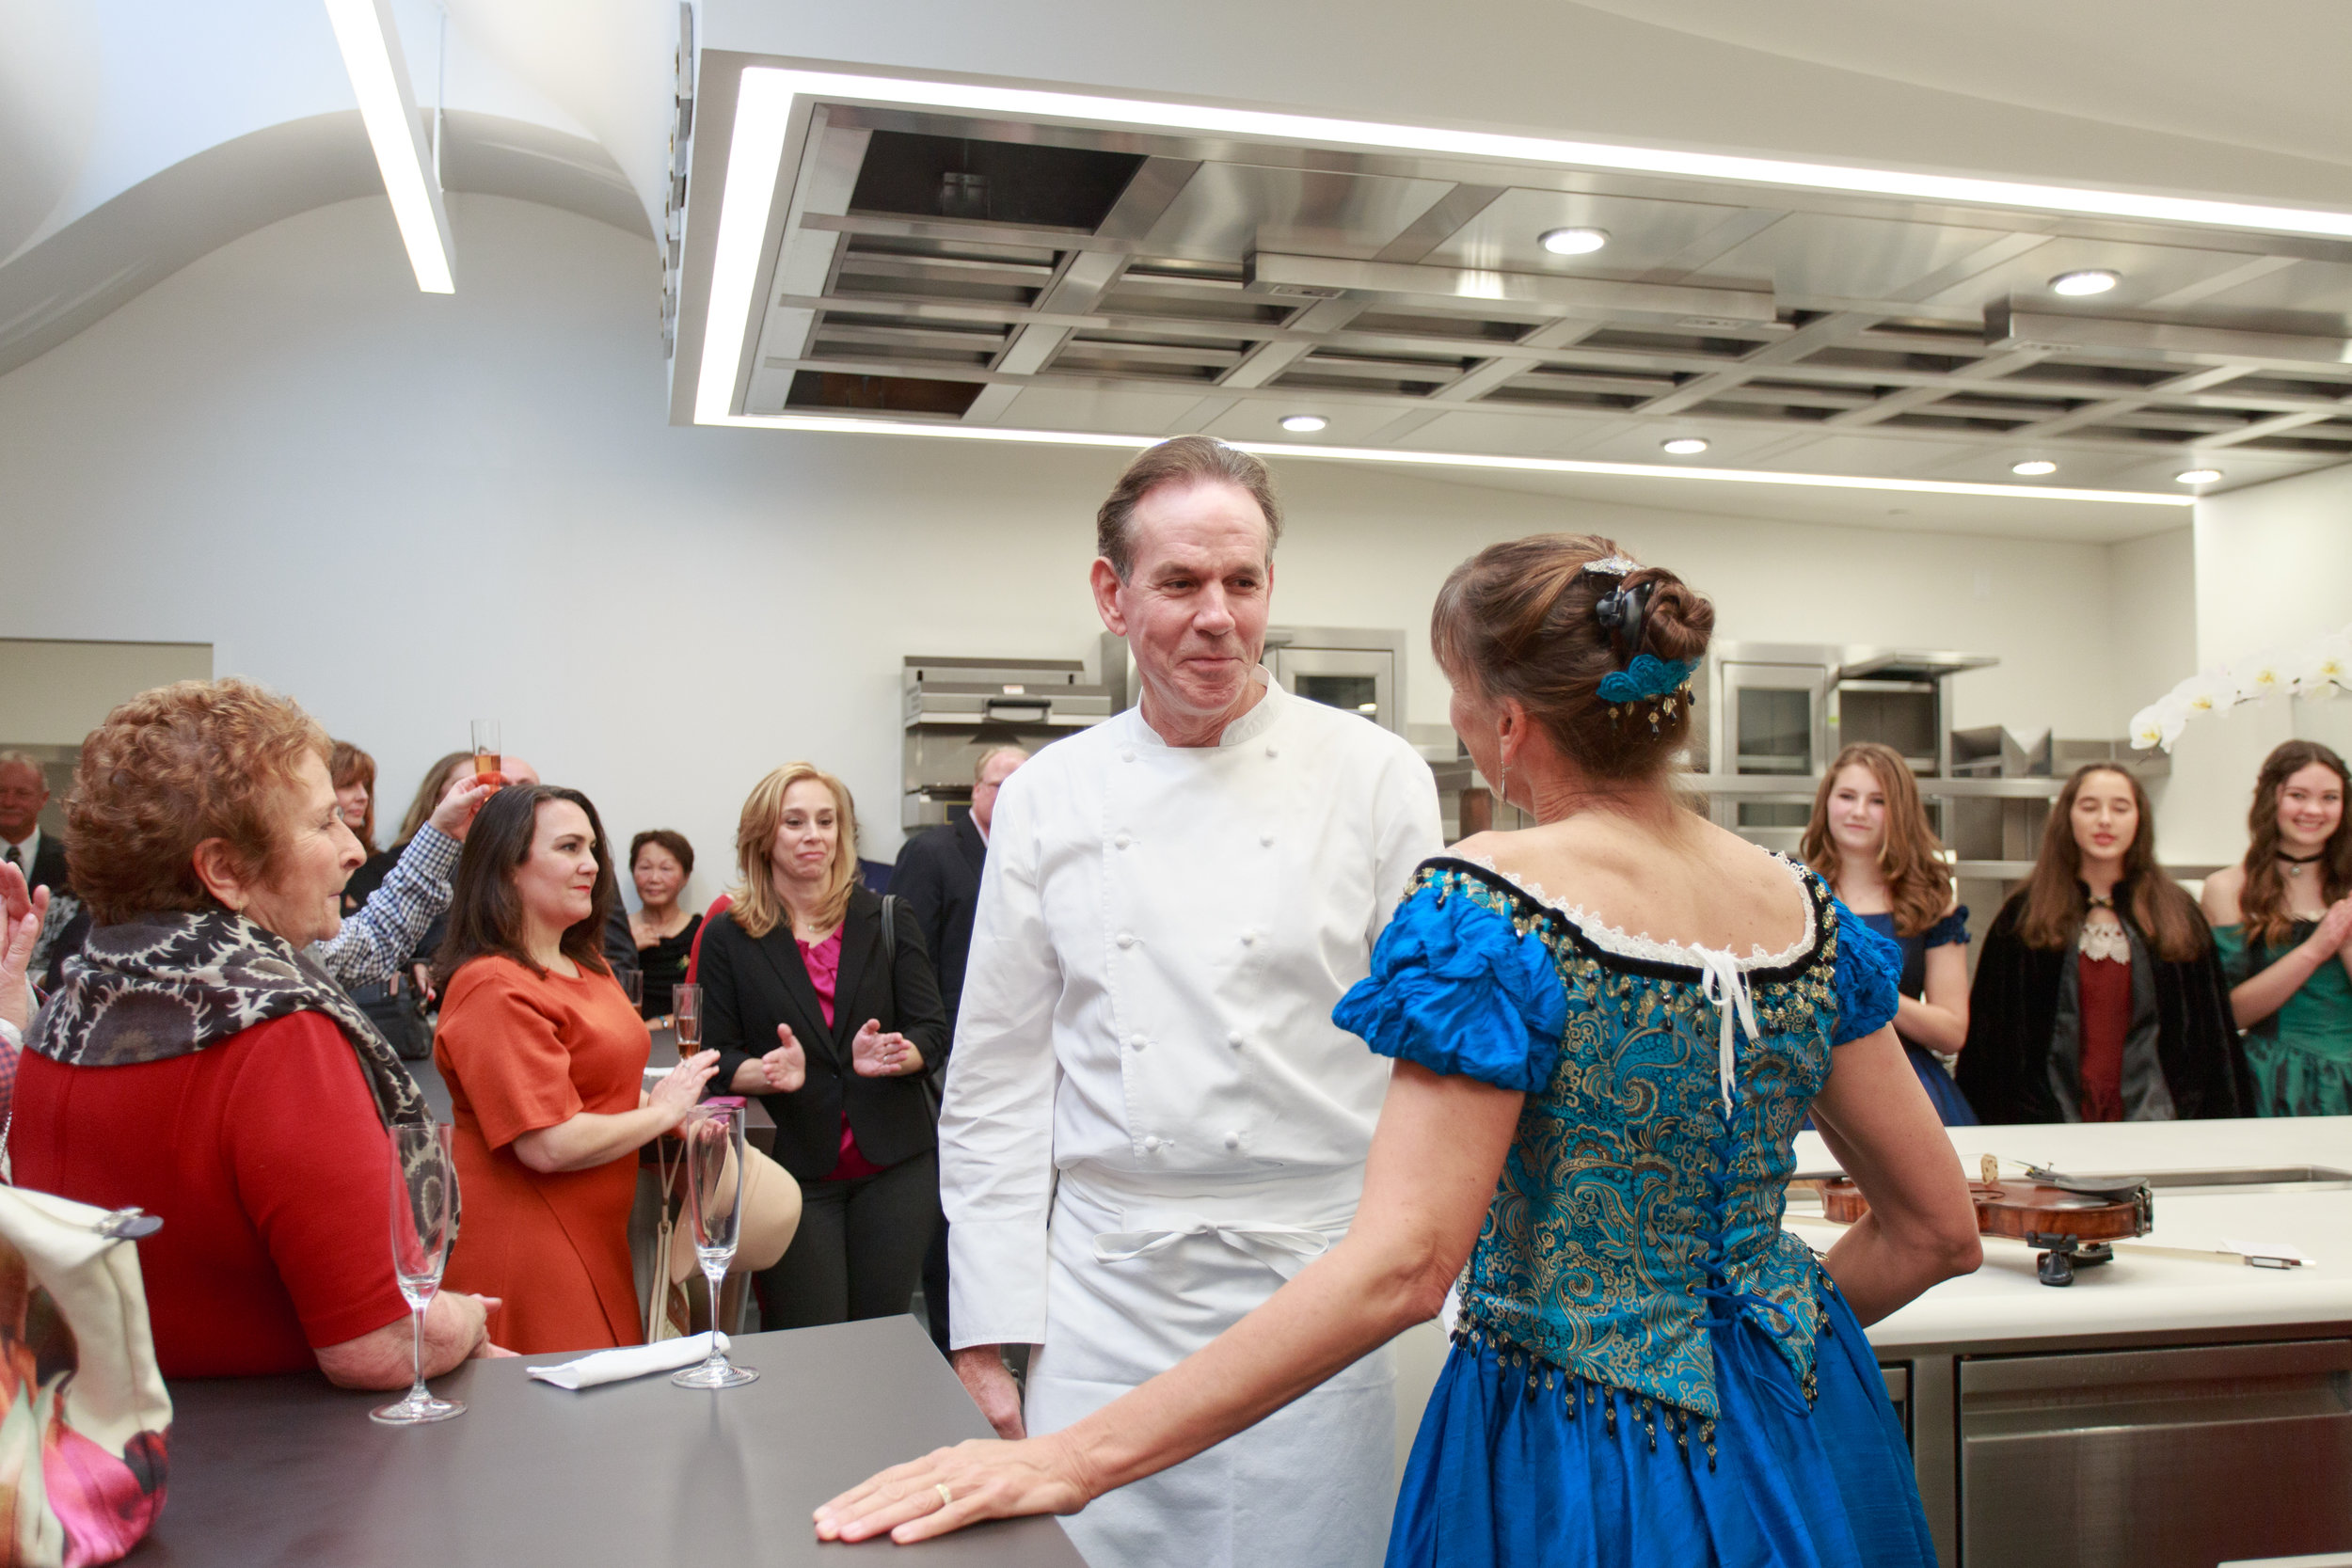 VOENA with Chef Thomas Keller at The French Laundry Fundraiser.